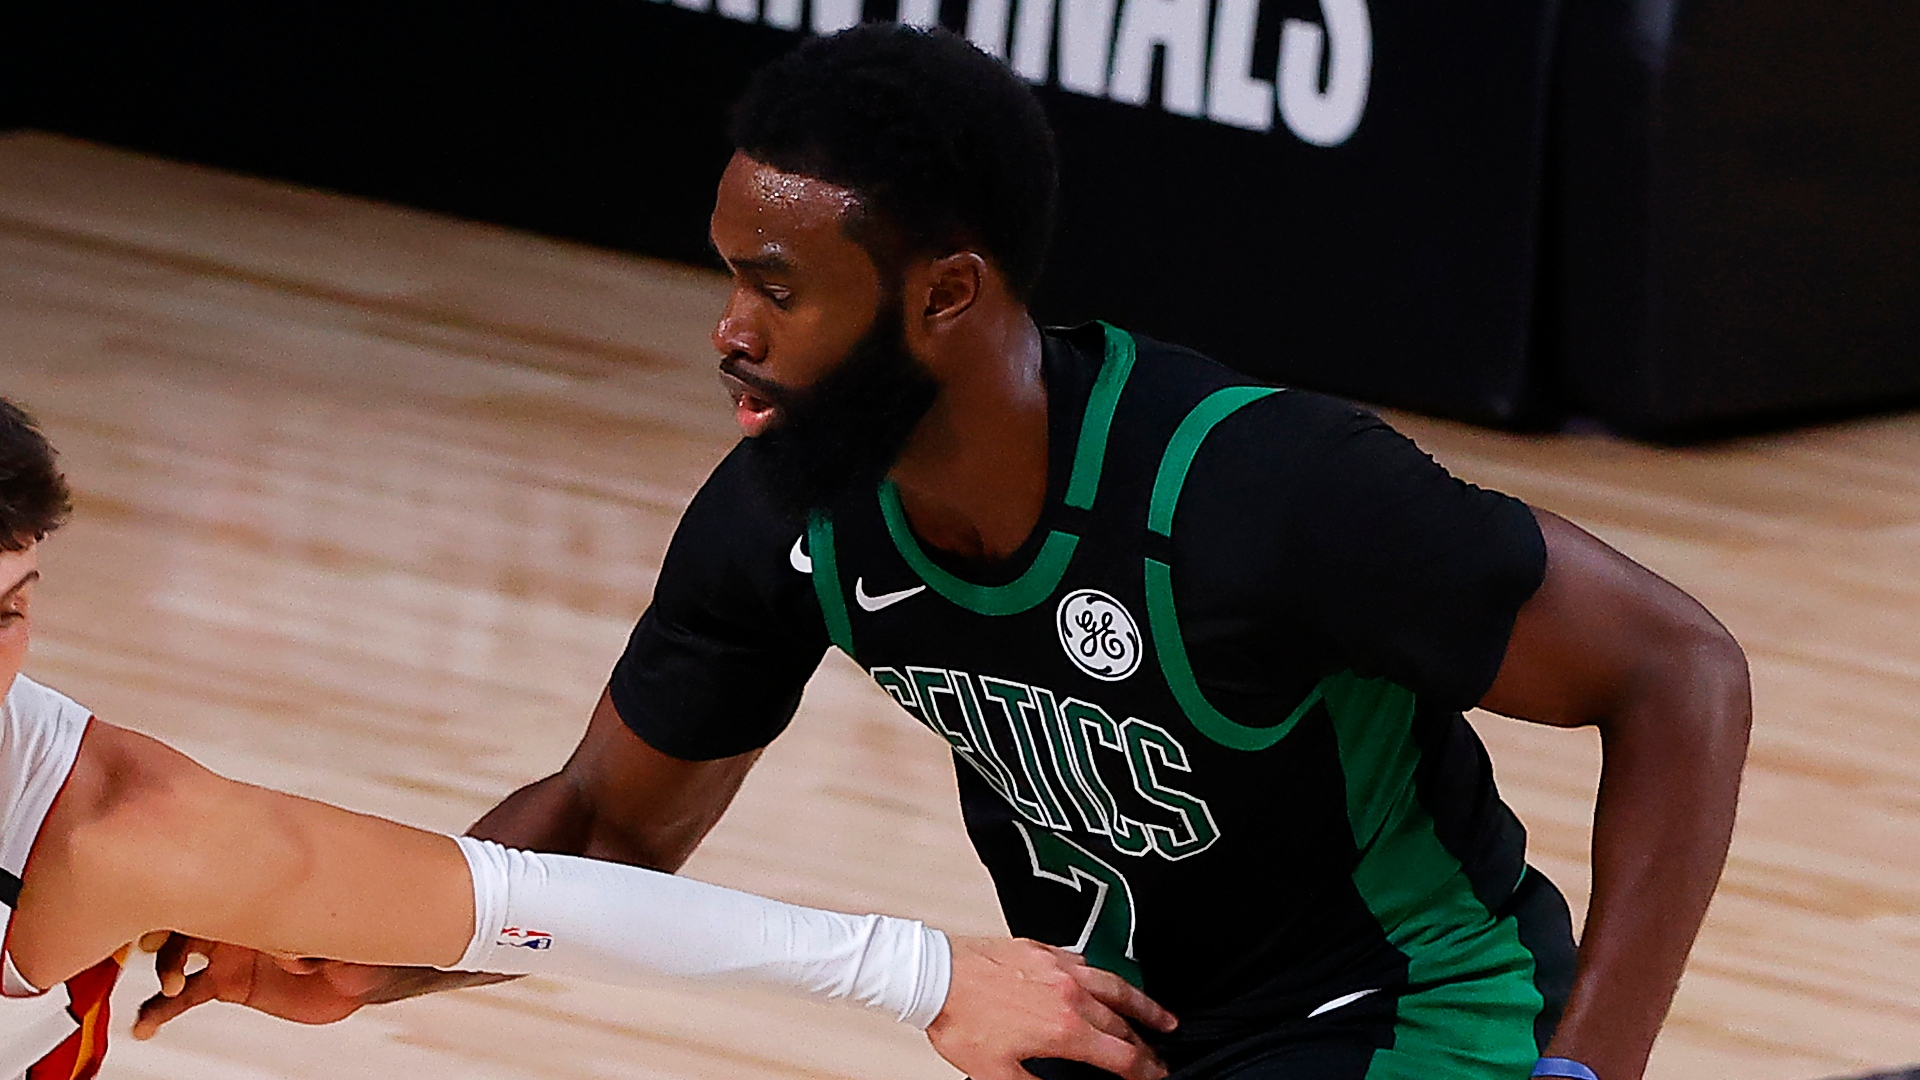 Tensions ran high in the Boston Celtics locker room after a second consecutive loss to the Miami Heat.